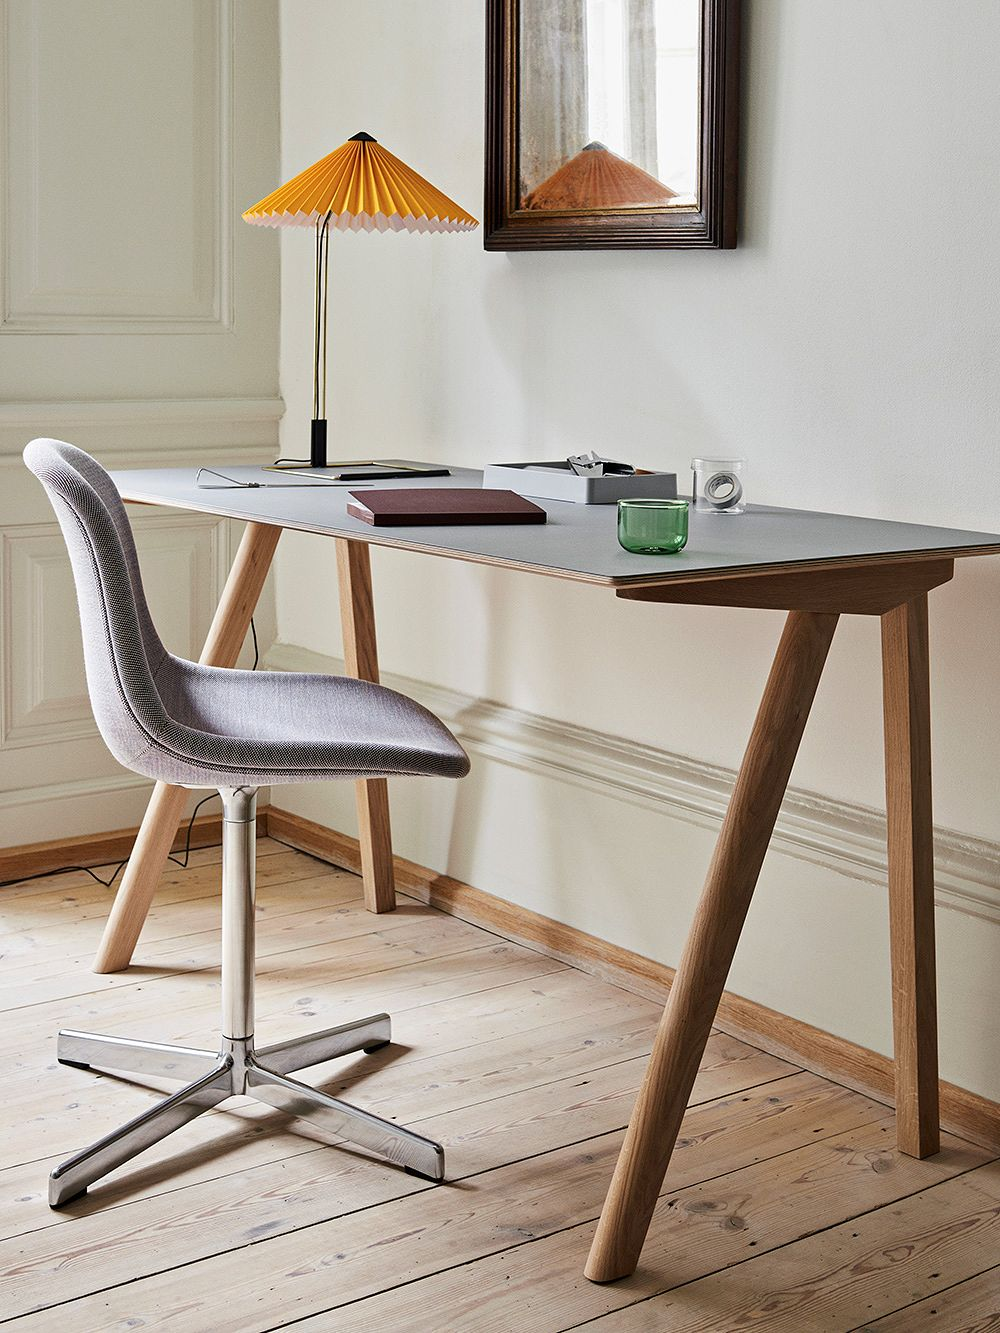 Hay CPH90 desk and Matin table lamp